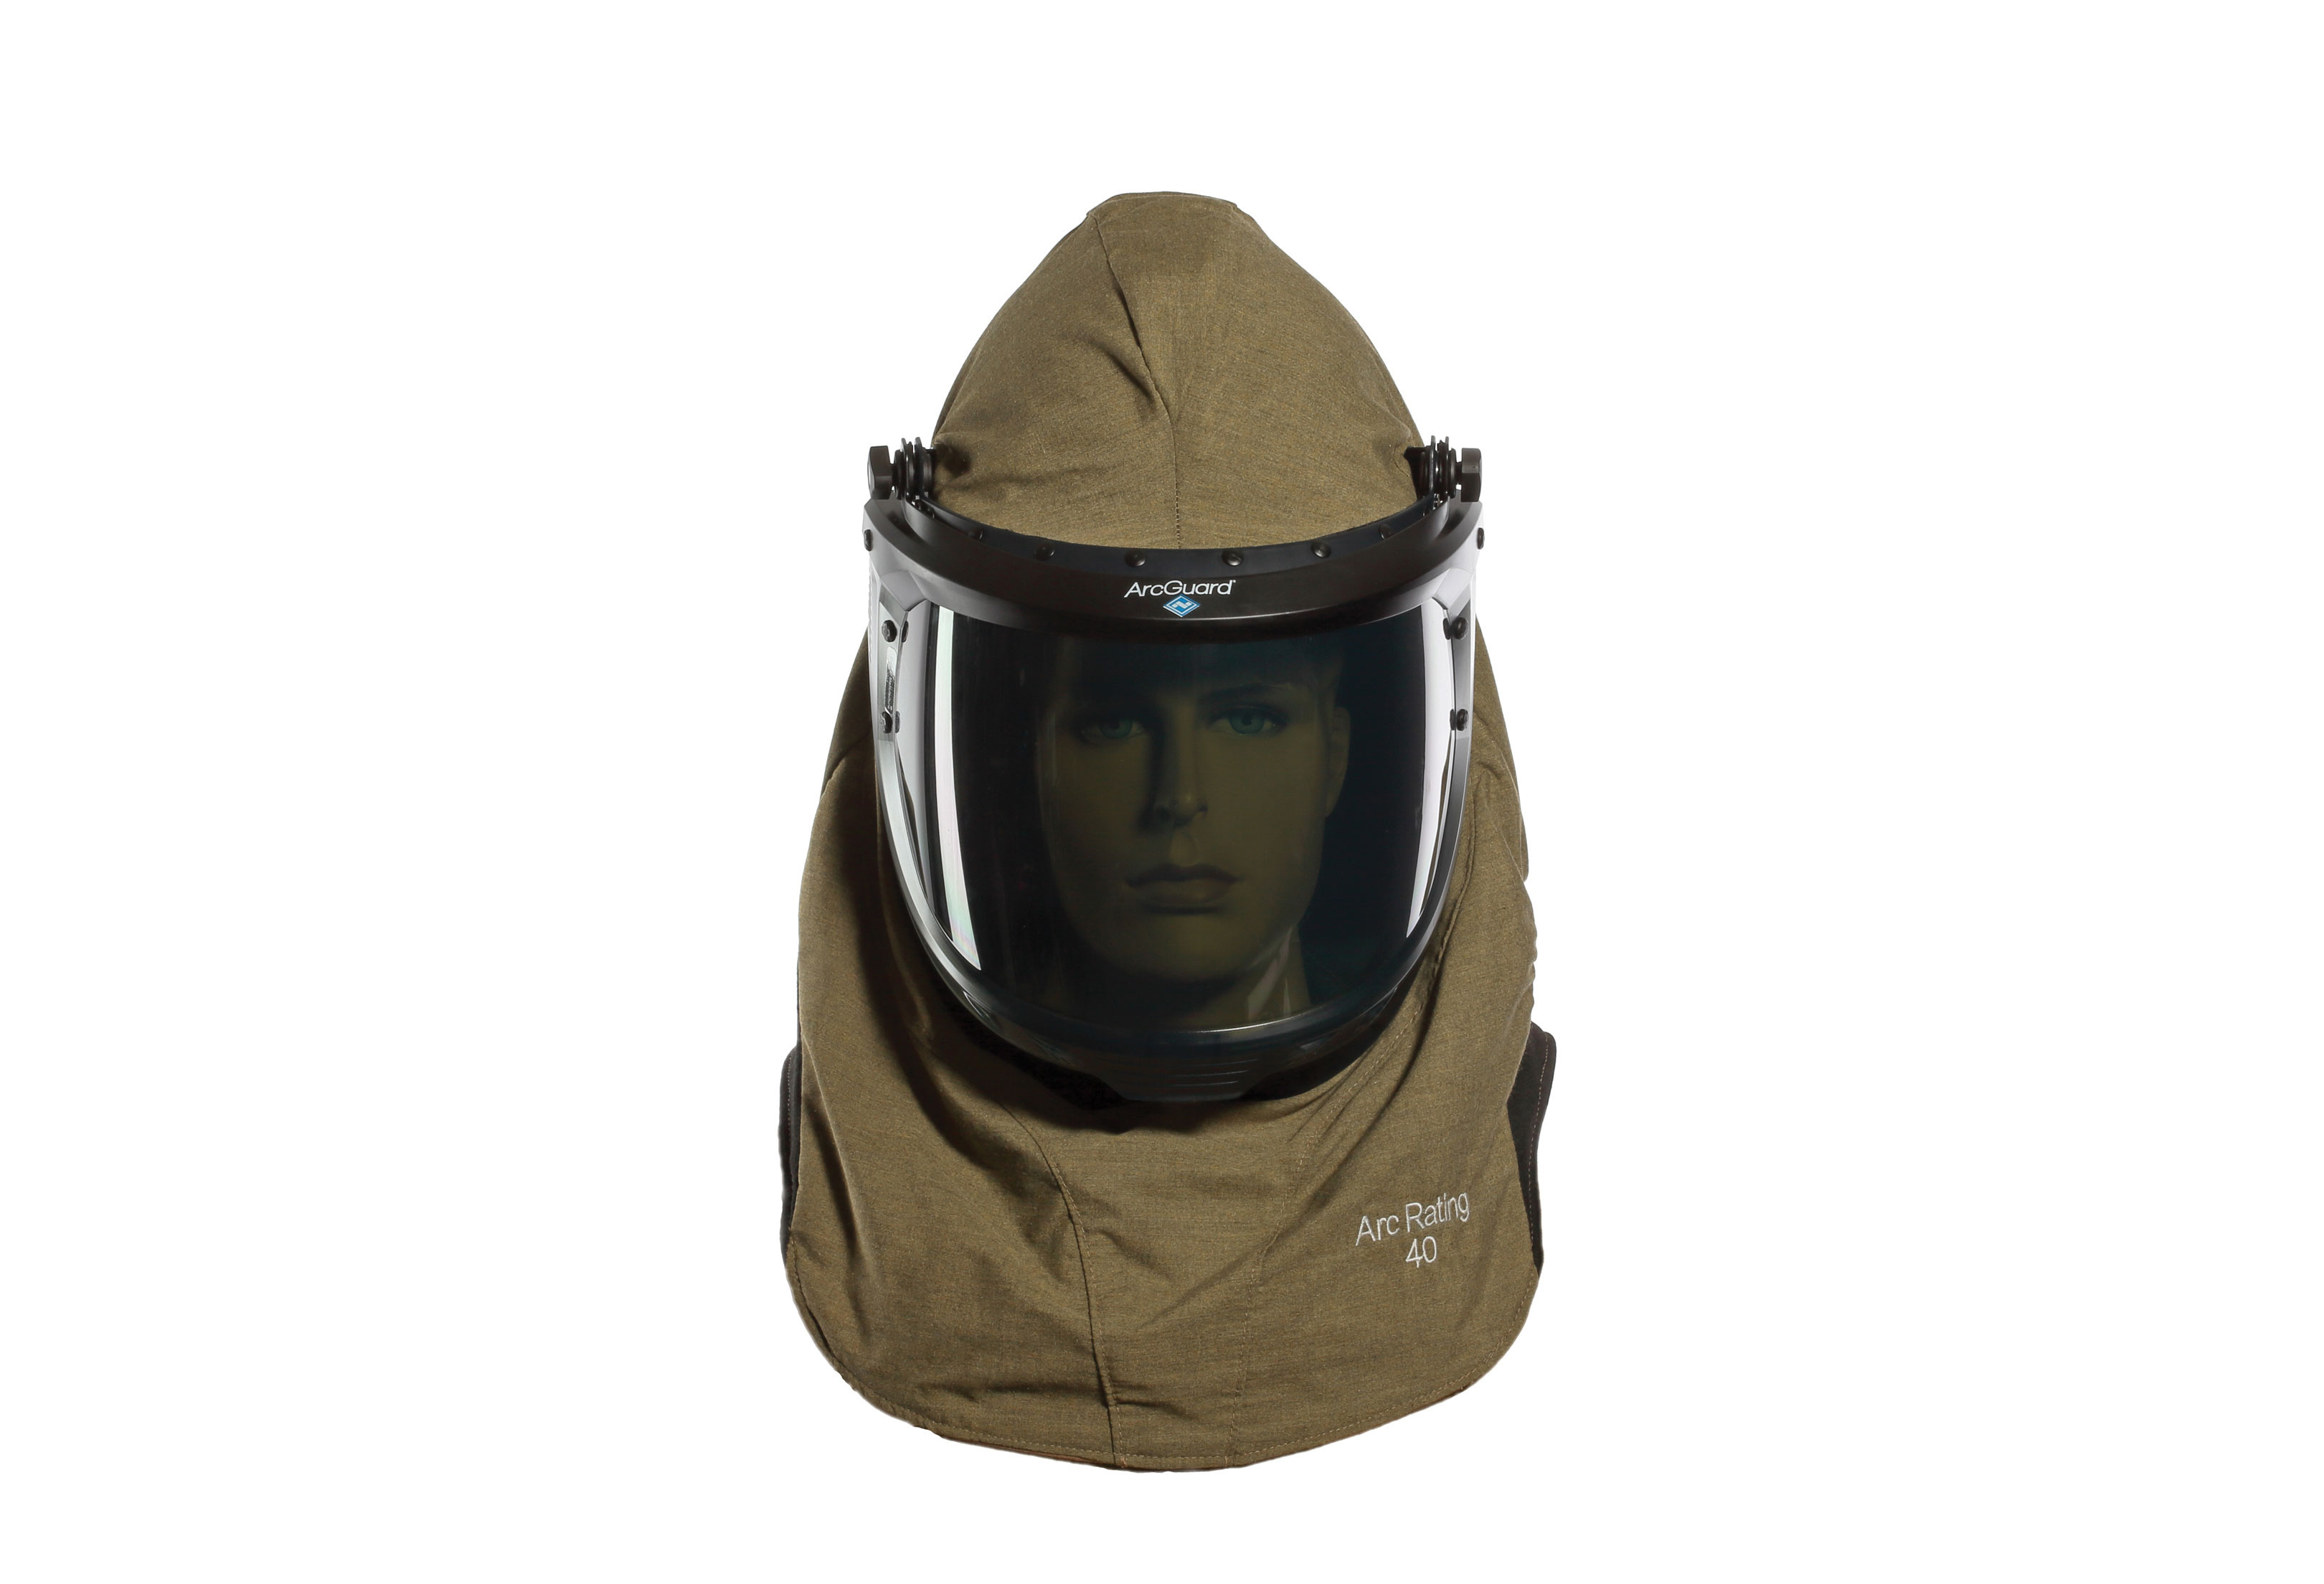 National Safety Apparel's arc flash hood